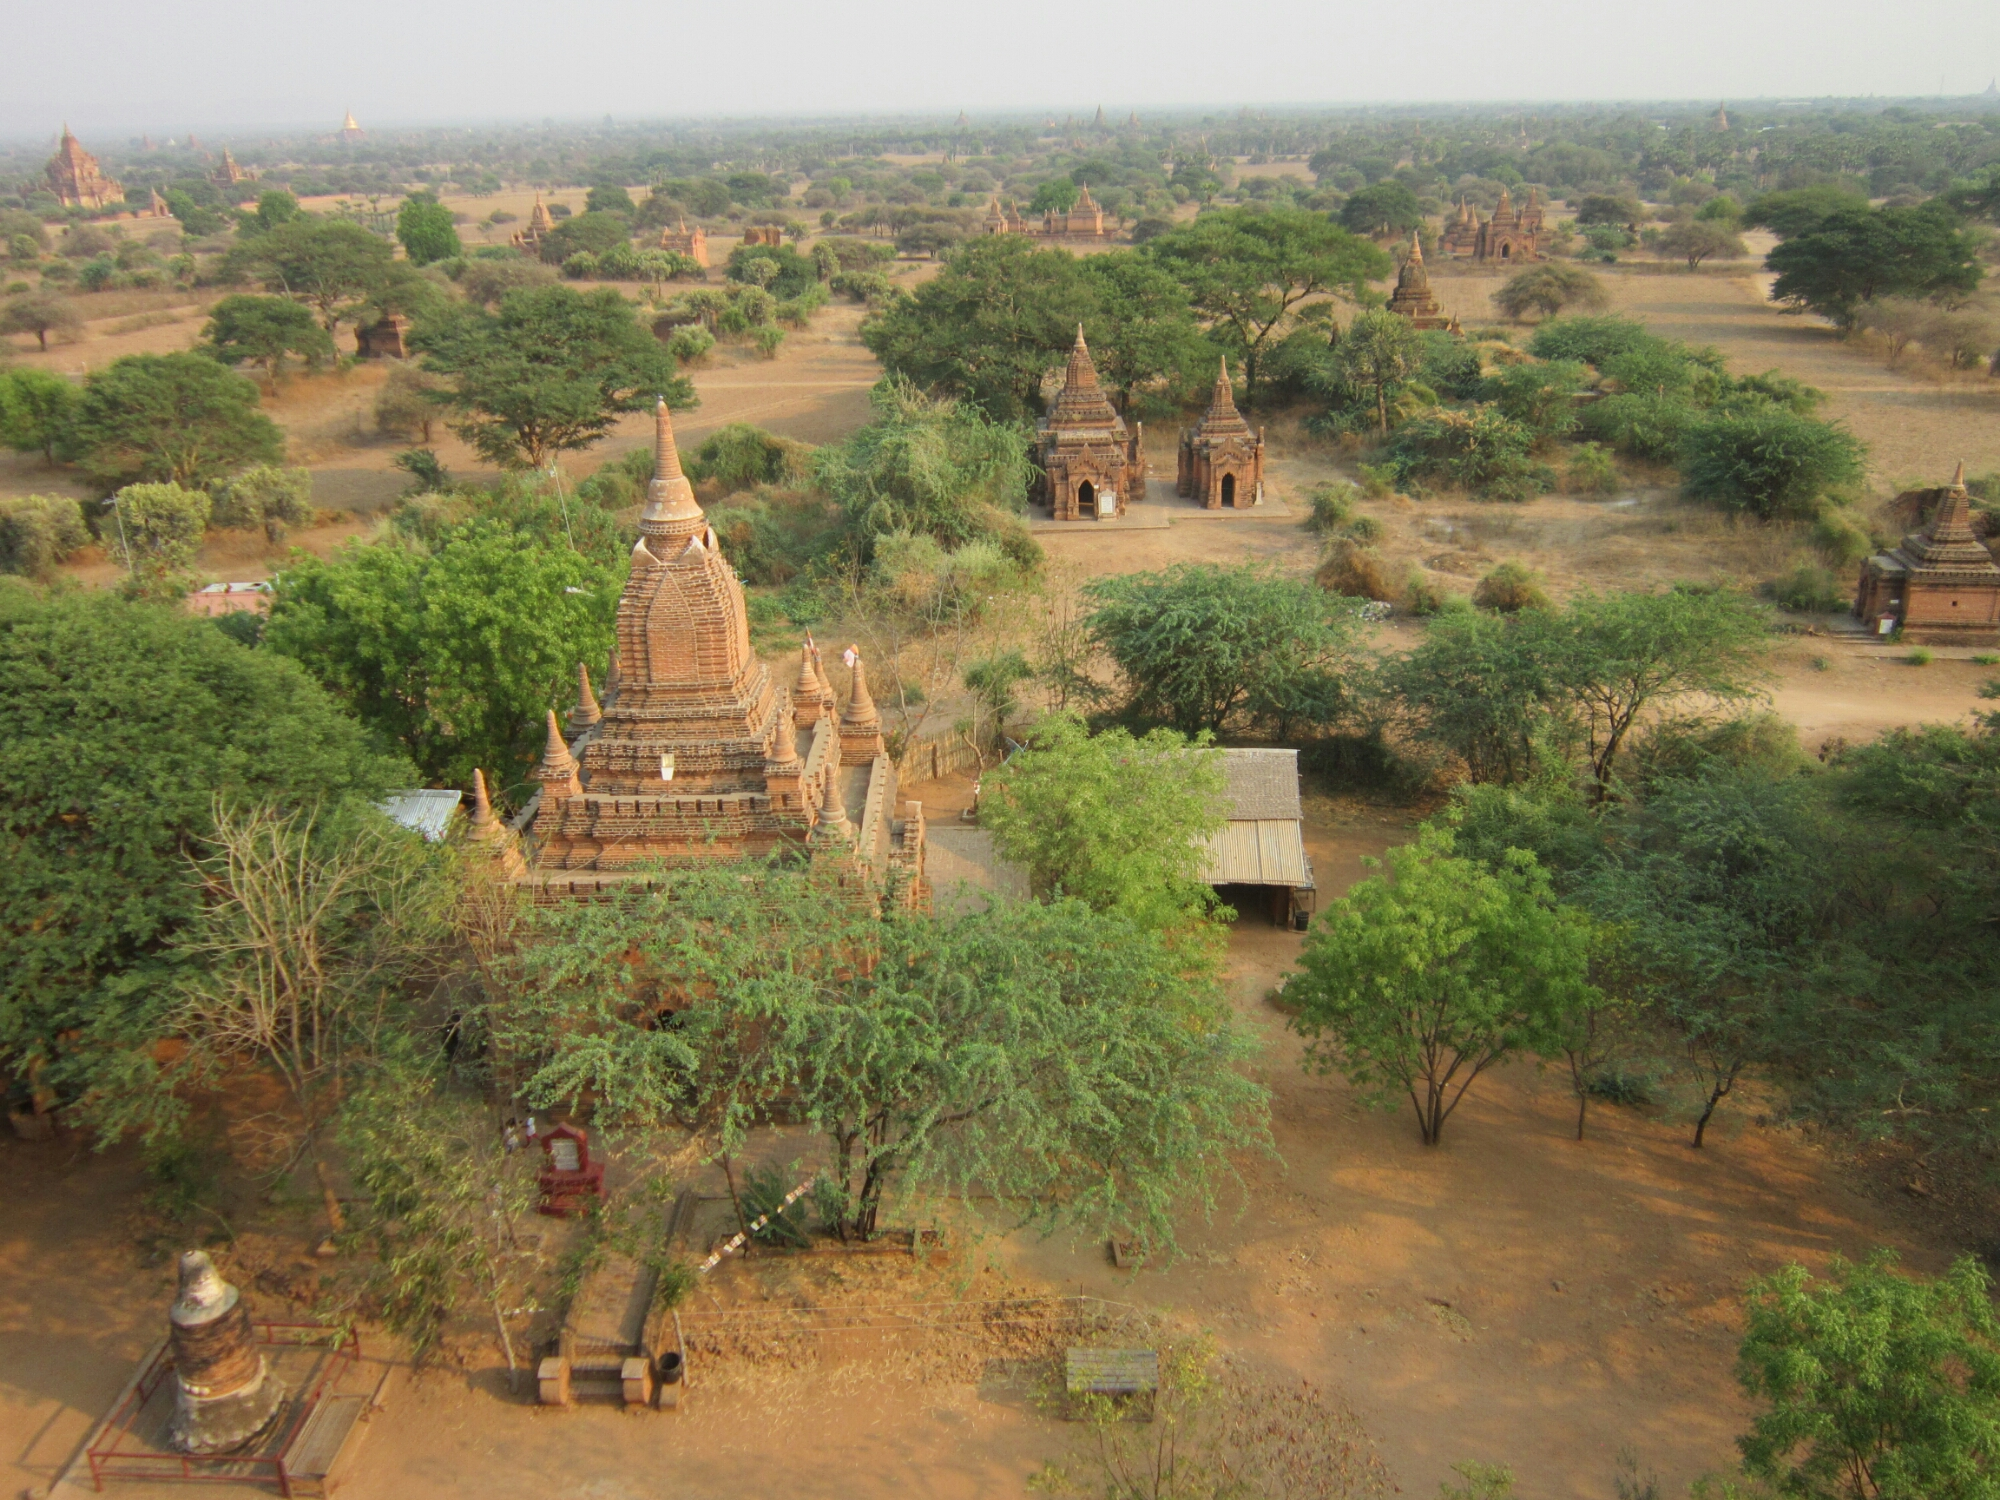 The plains of Bagan, Myanmar. View of temples spread out across the landscape.